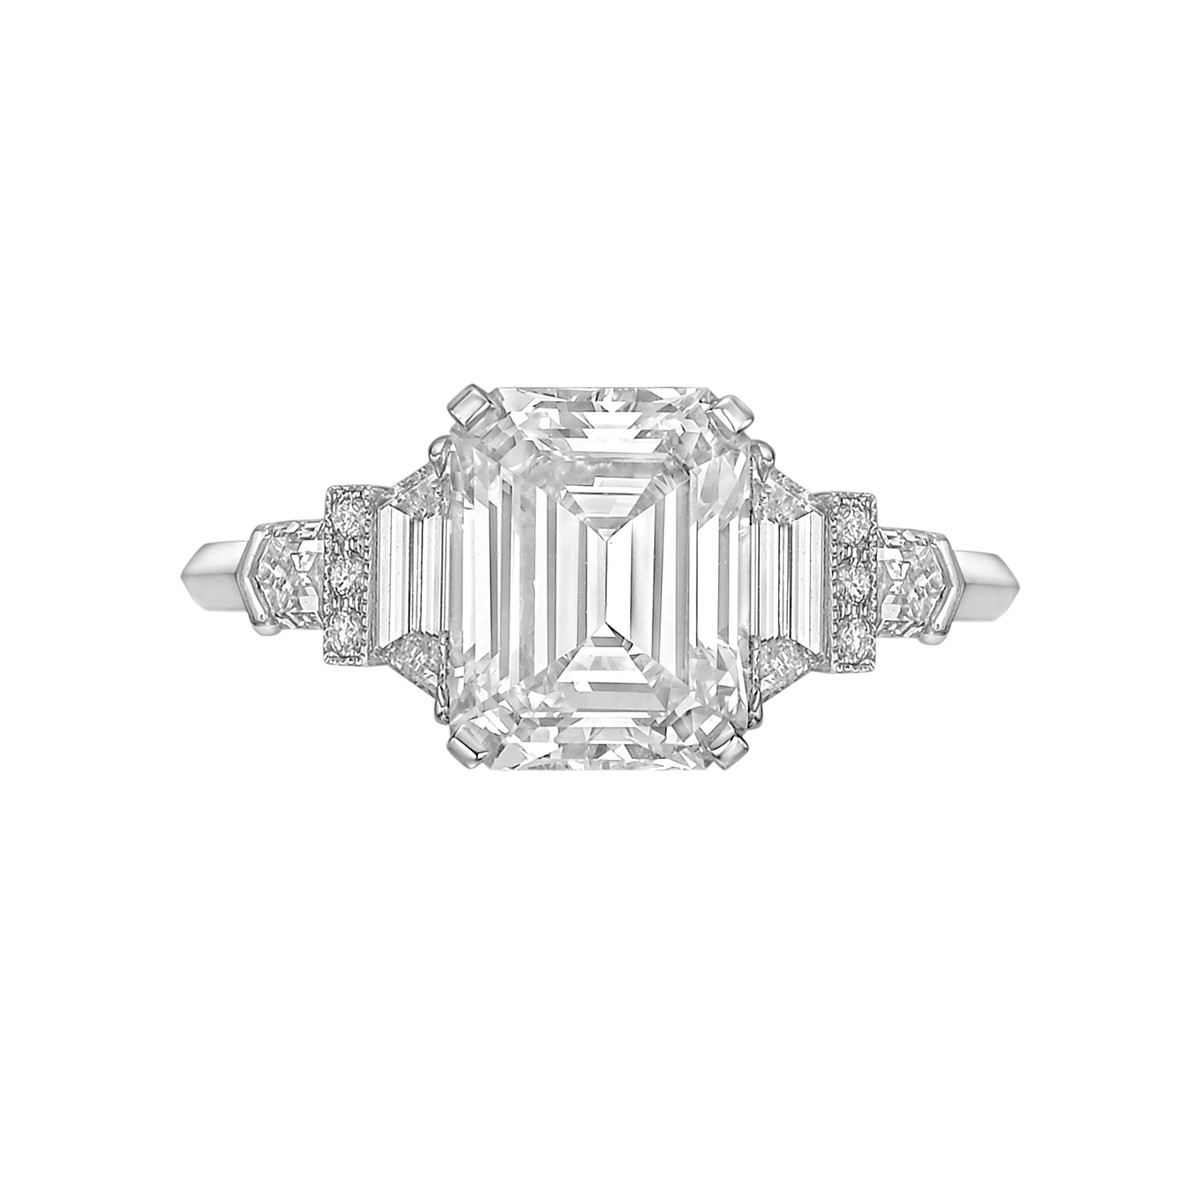 3.11ct Emerald-Cut Diamond Ring (F/VVS2)